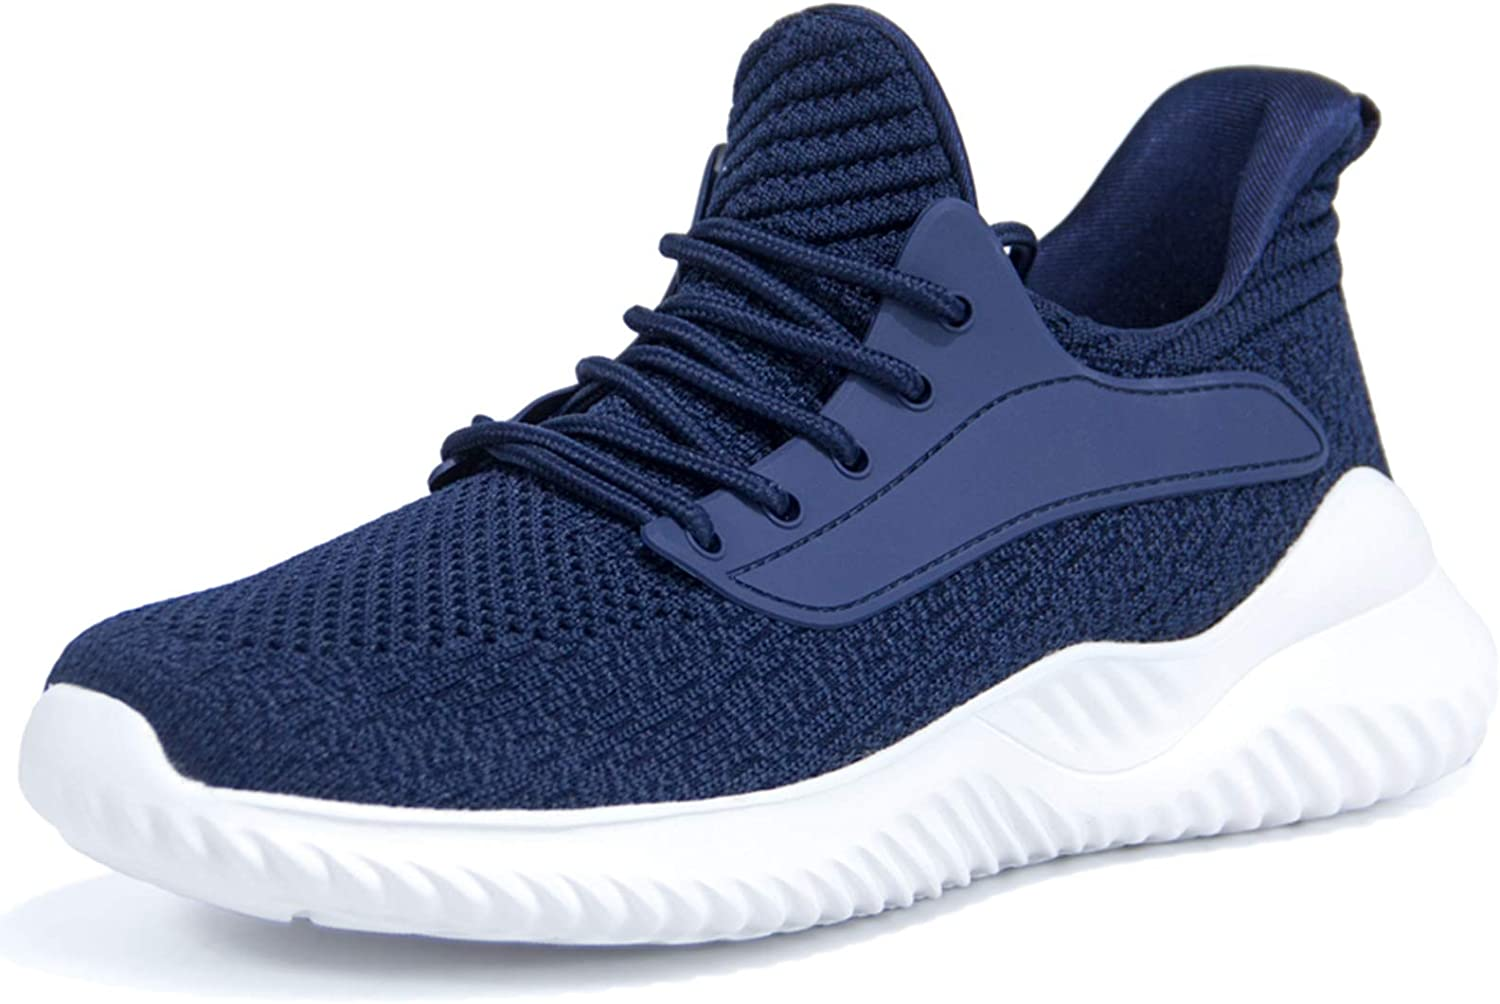 Akk Running Shoes for Men Lightweight Comfy Memo Casual New life Ranking integrated 1st place Sneakers